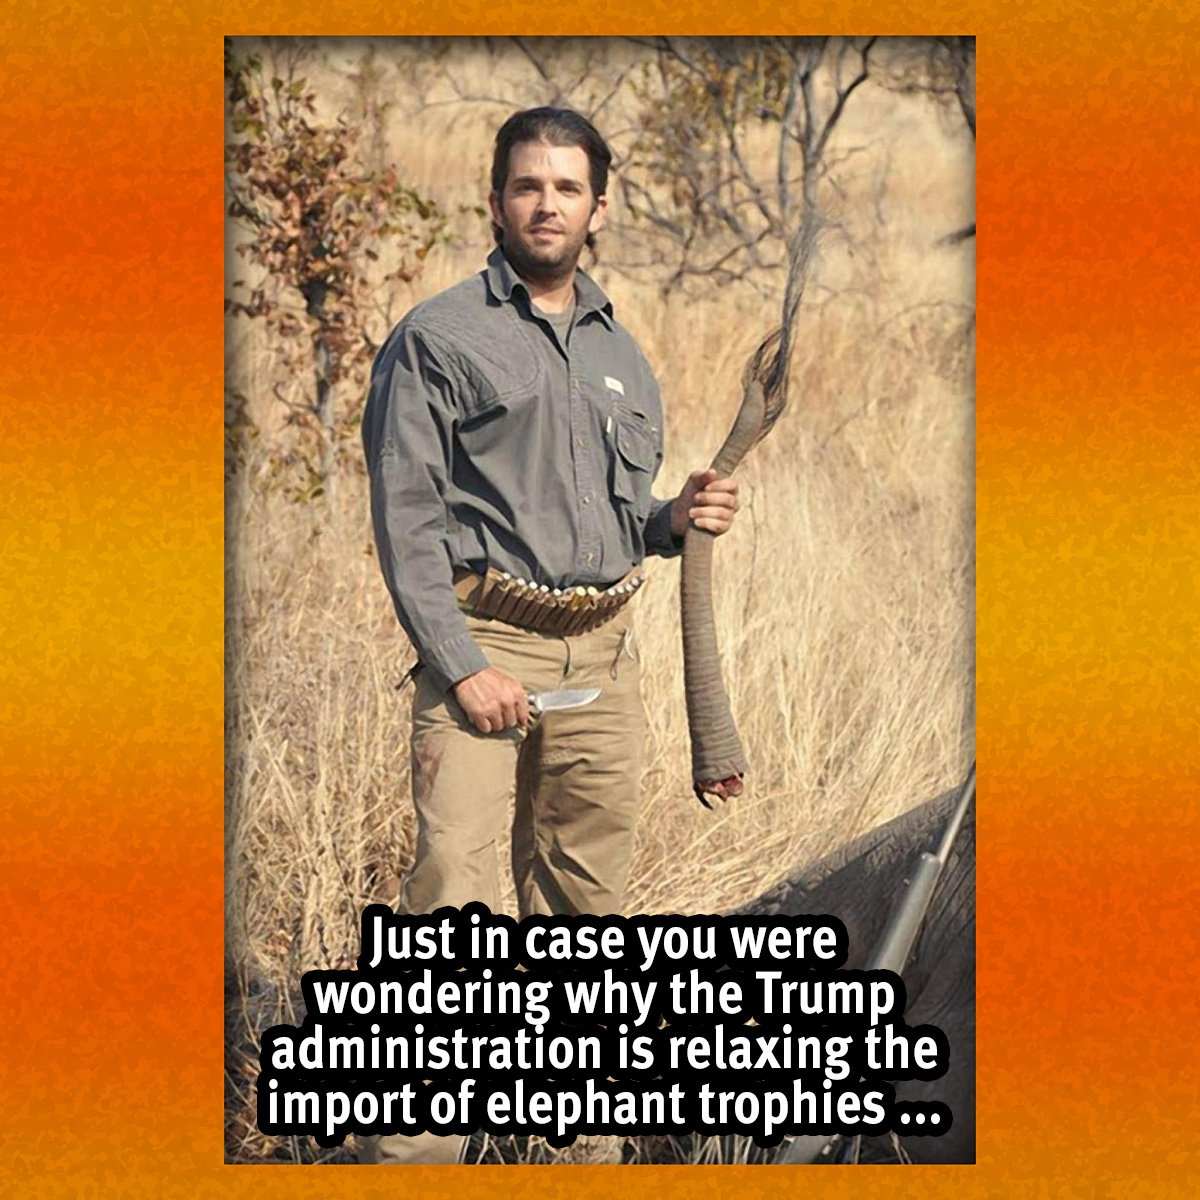 While this coward watched his friends go to war to protect his family's wealth he went to Africa to shoot defenceless elephants from a safe distance #TheRealDonalTrump #Trump @POTUS #Resist #TheResistance #IvankaTrump #MAGA